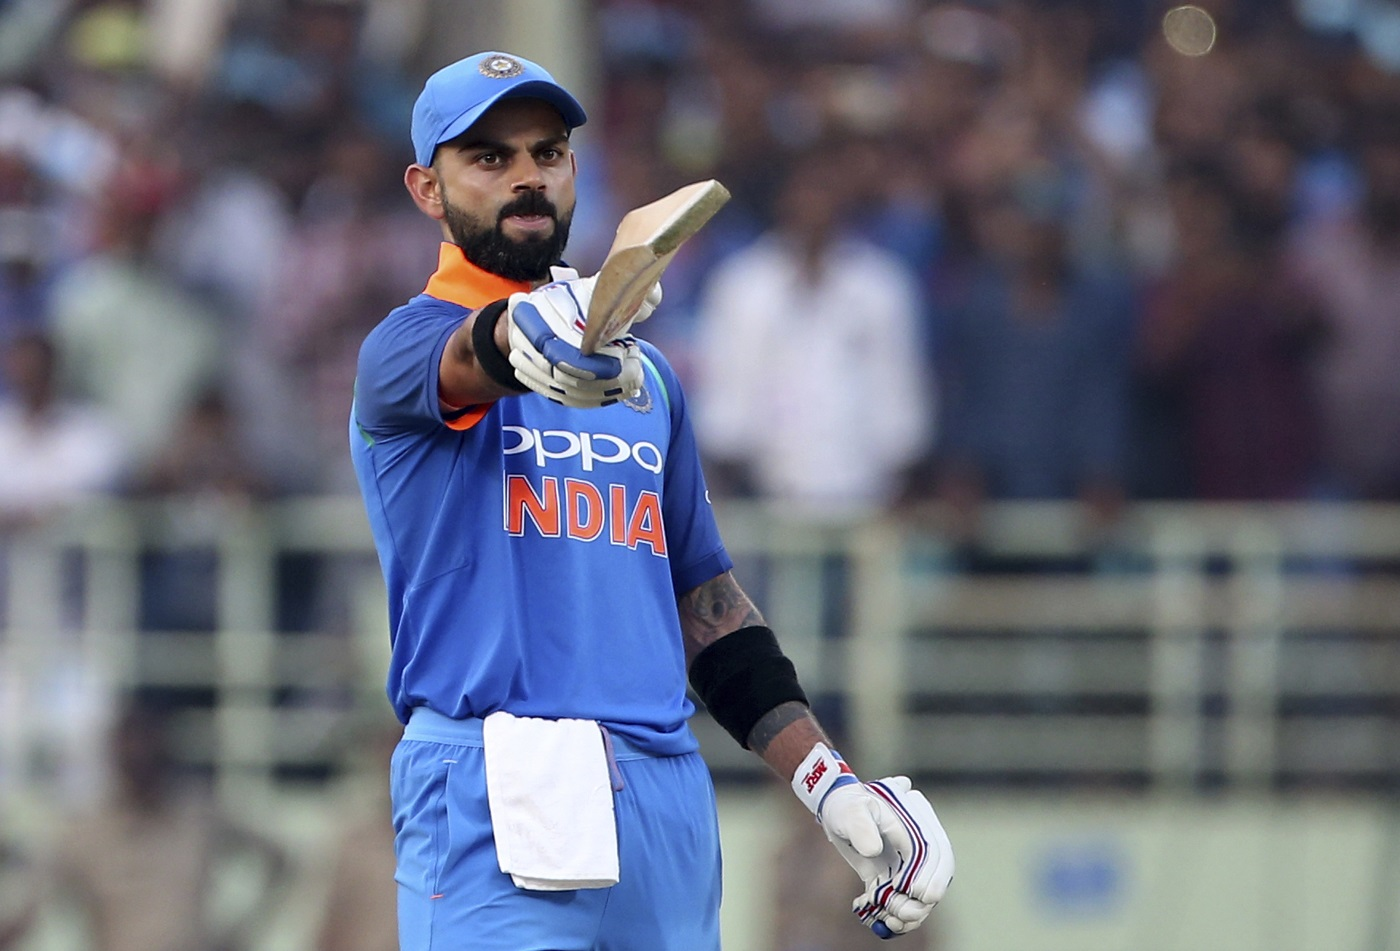 Watch: Virat Kohli Caught Out In Stunning Manner... By A BALL BOY